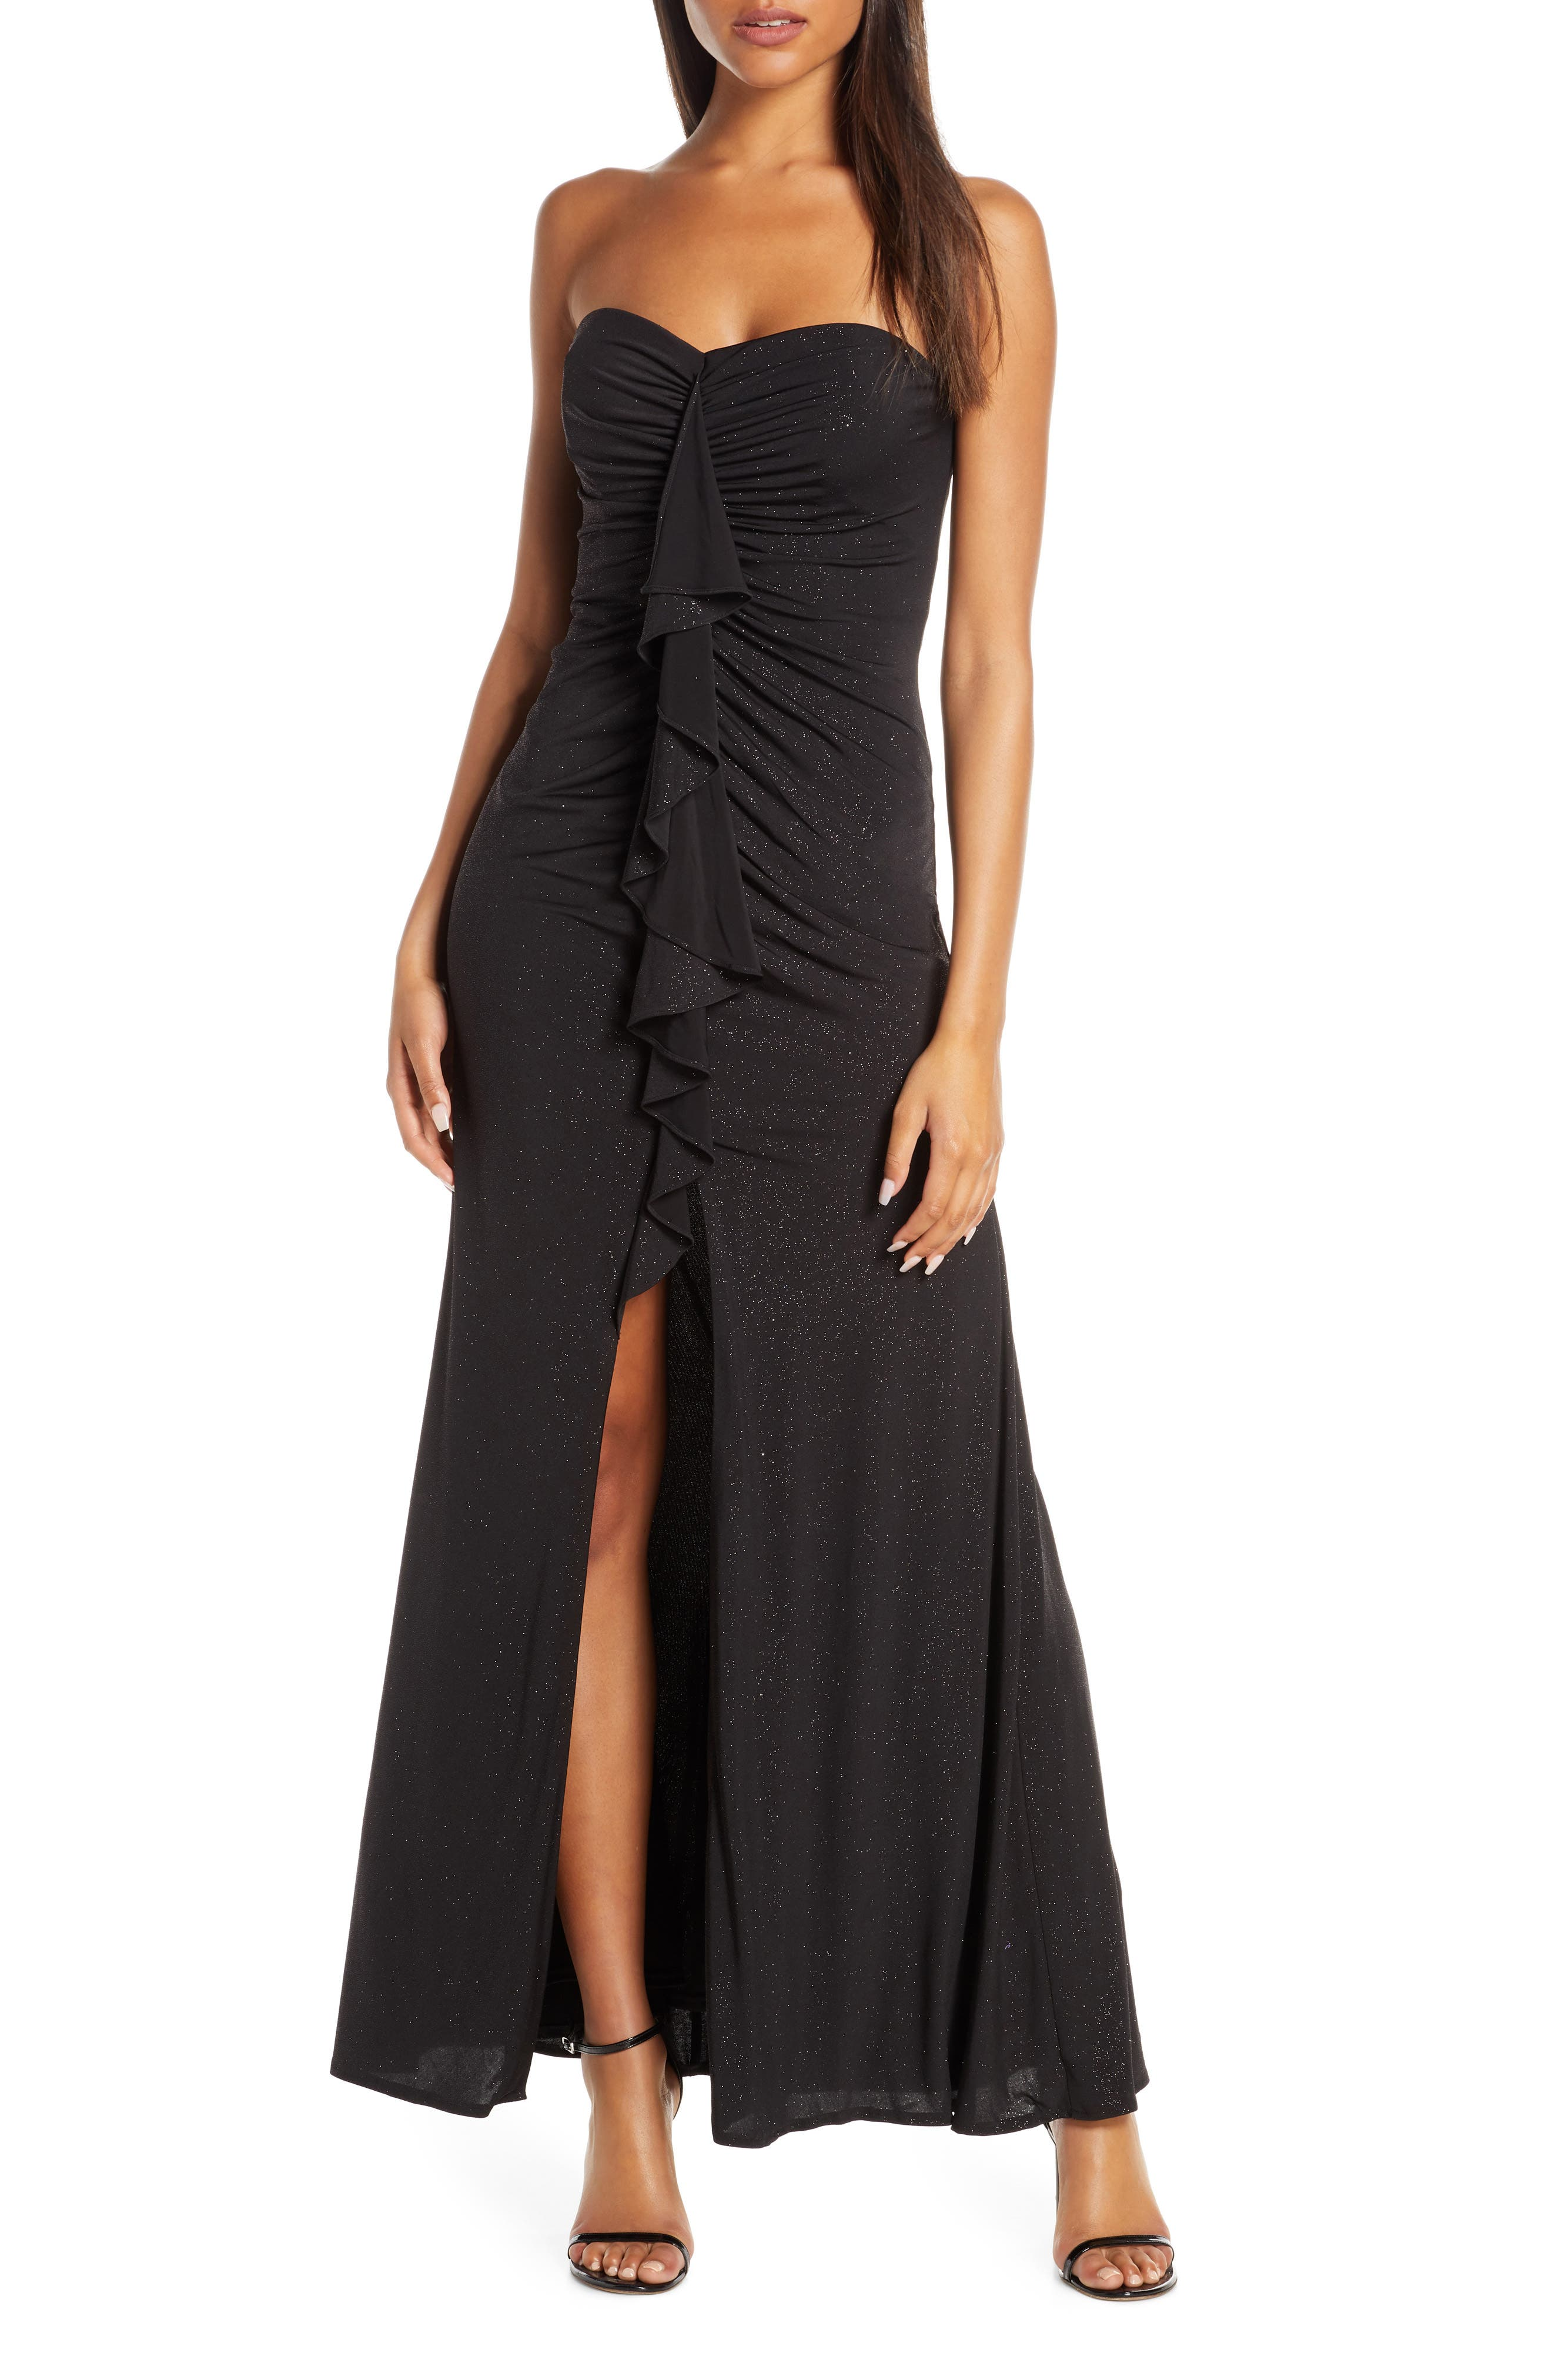 Vince Camuto Cascading Ruffle Strapless Gown, Black